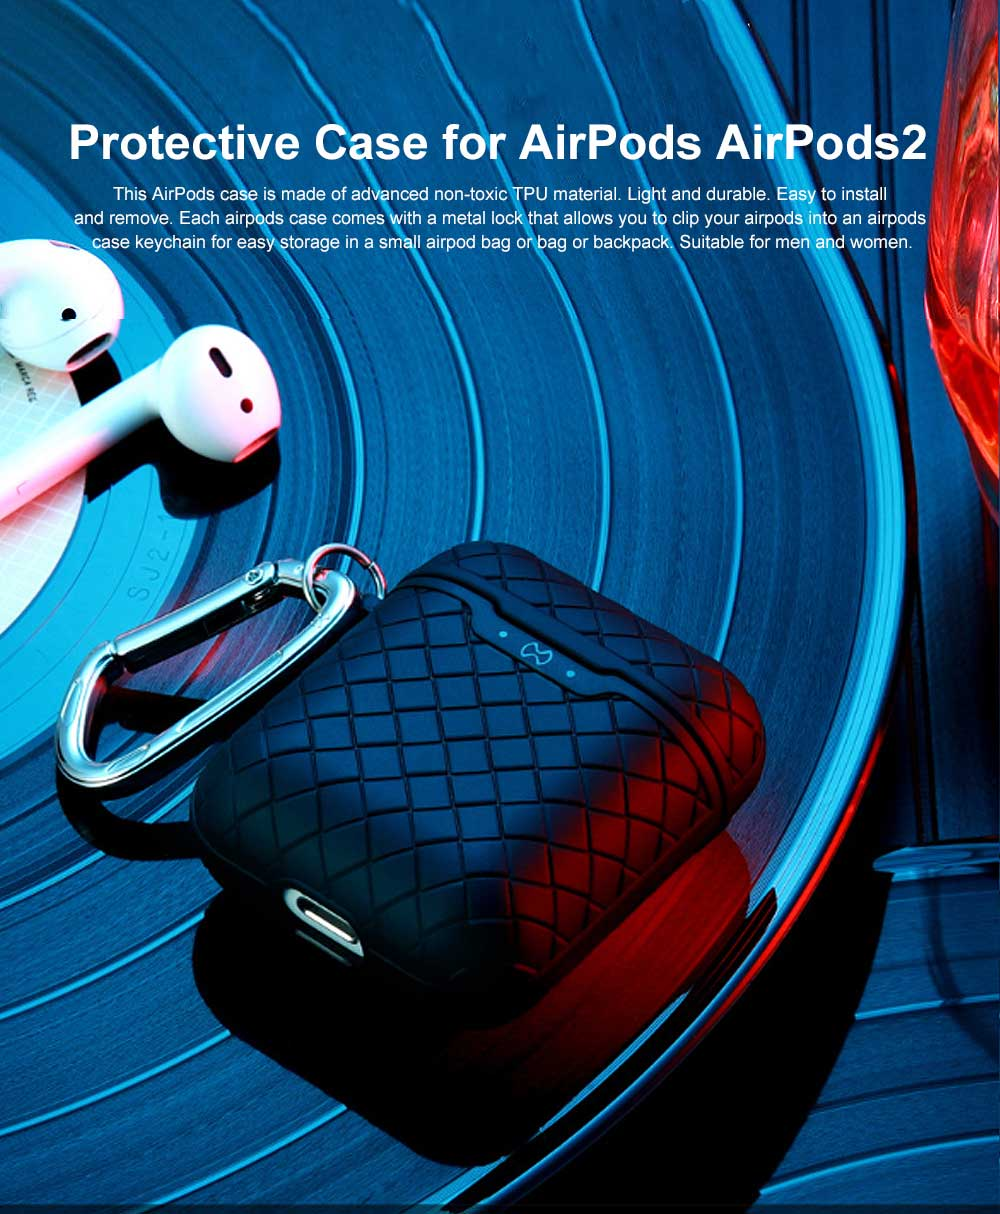 Ultra-thin Protective Case for AirPods AirPods 2, Anti-loss Bluetooth Headset Woven Case Storage Bag TPU for Men & Women 0